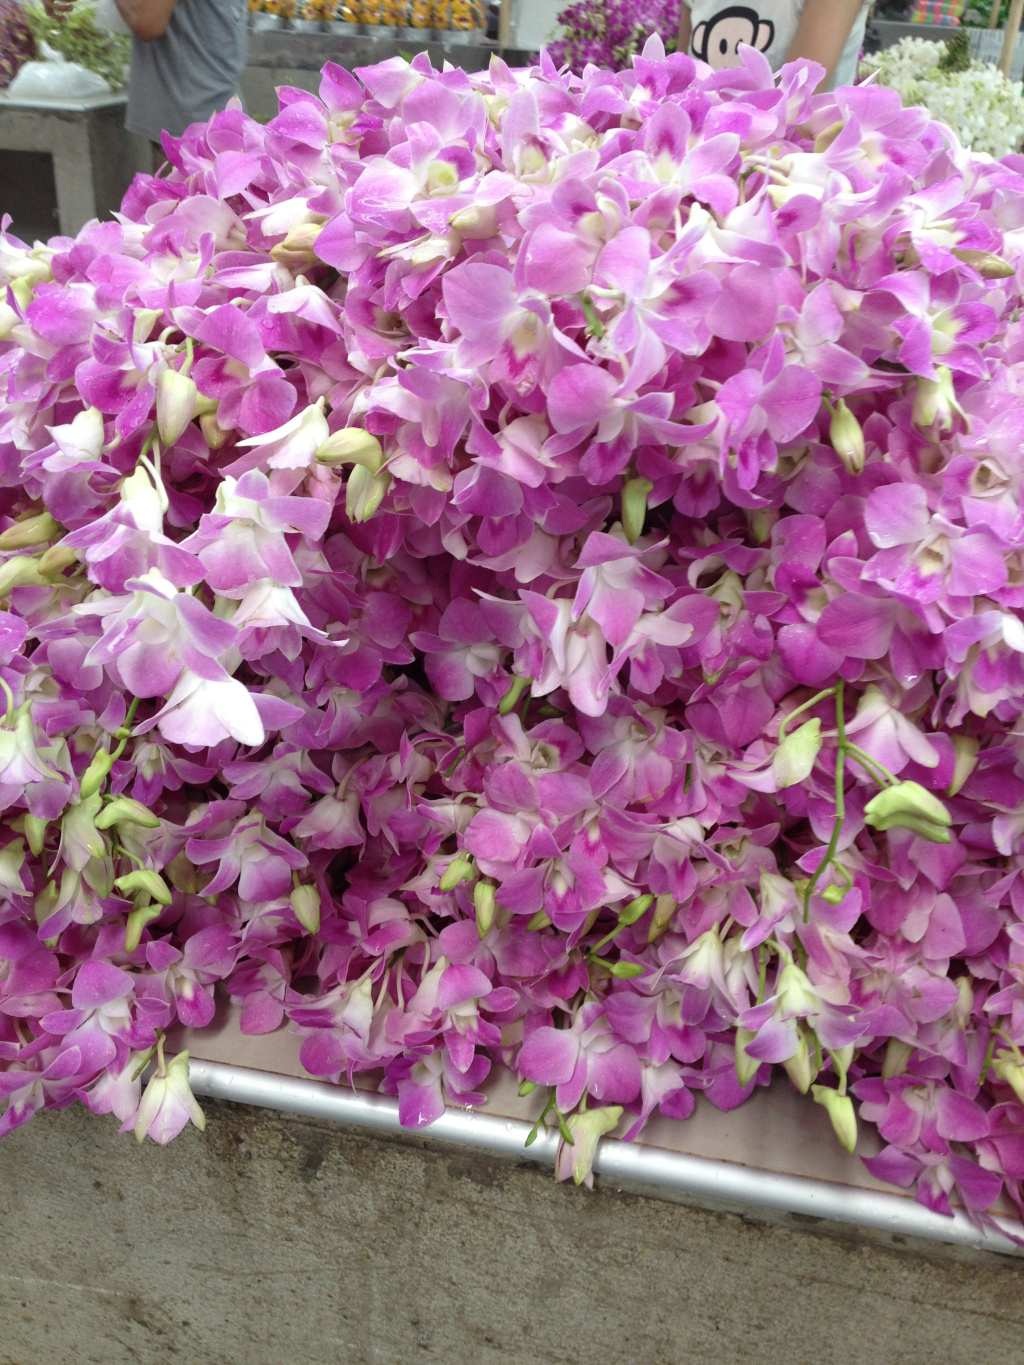 Pile of Orchids–$1 USD for a large bunch.